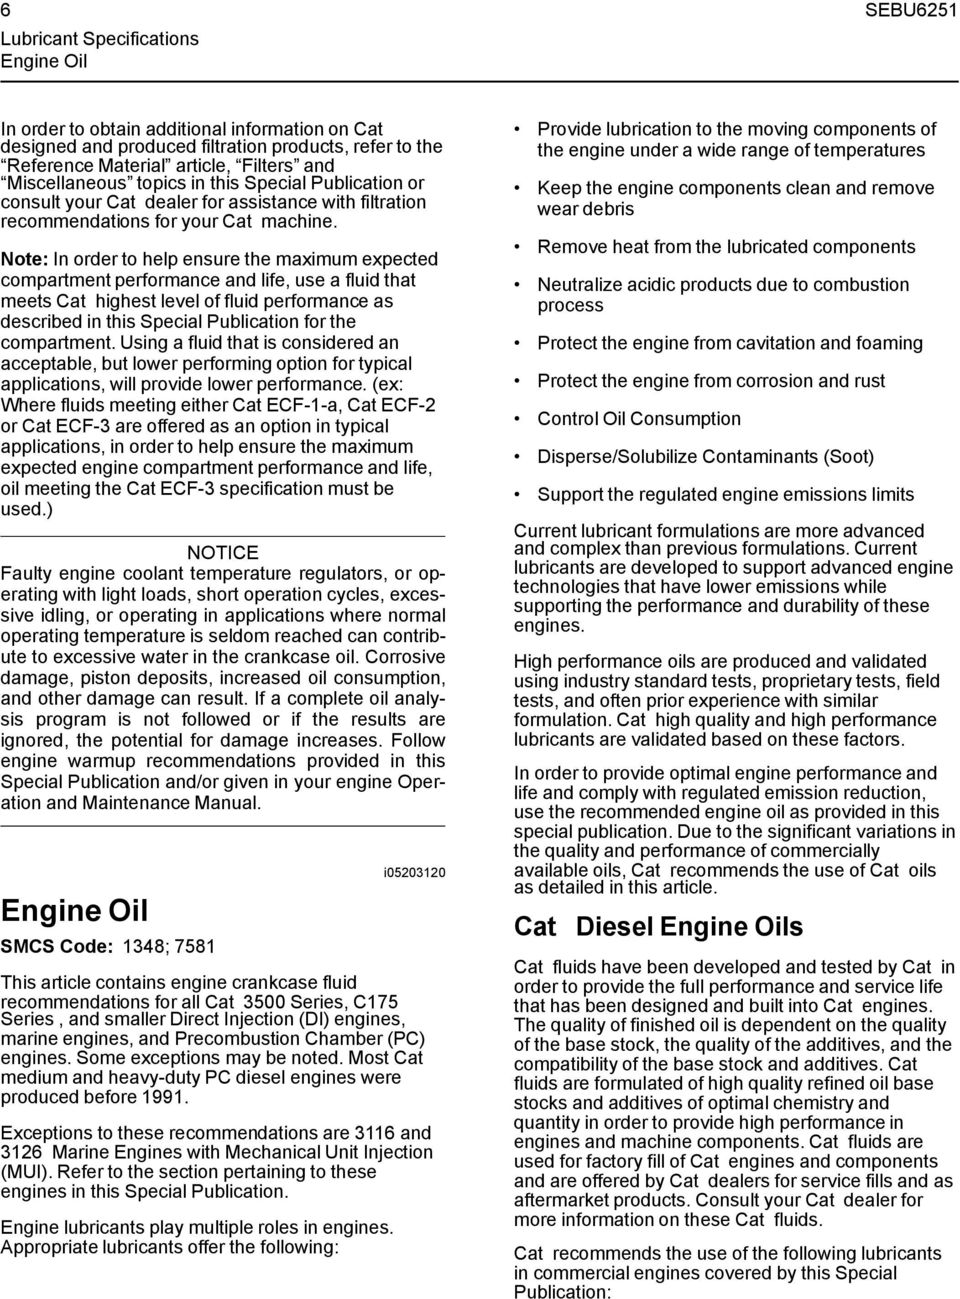 Cat Commercial Diesel Engine Fluids Recommendations Pdf 3600 Gas Diagram Note In Order To Help Ensure The Maximum Expected Compartment Performance And Life Use